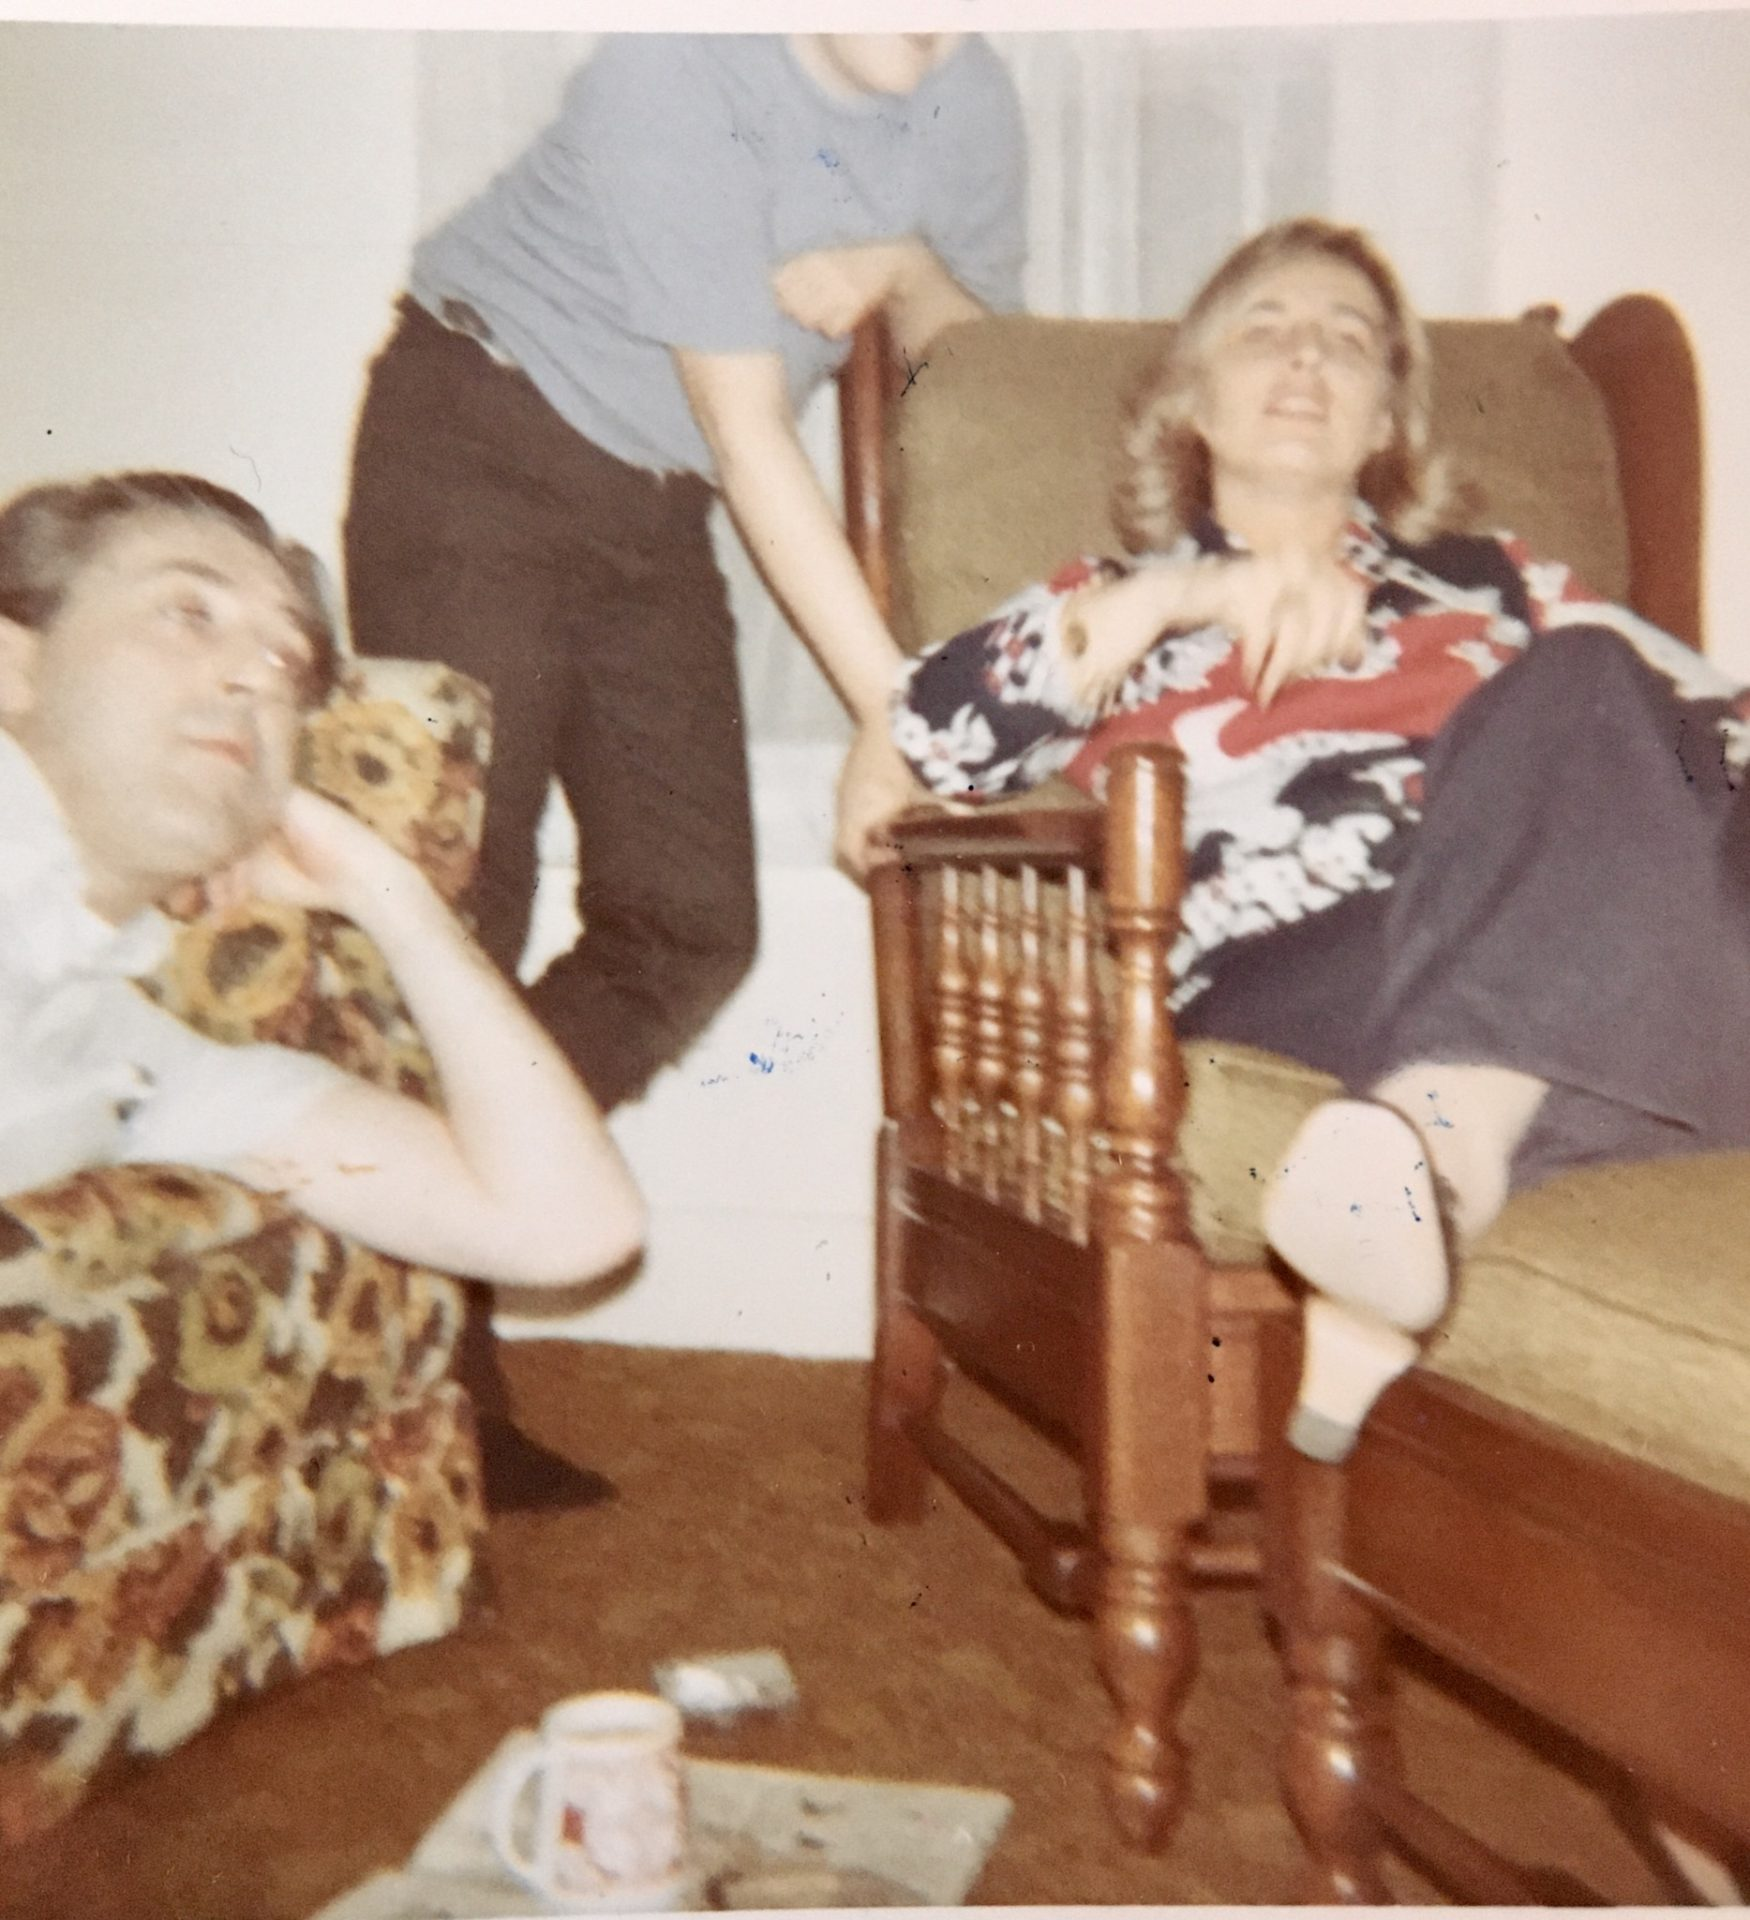 Pat and Frank, May 1972. She visited while in Albany for business.